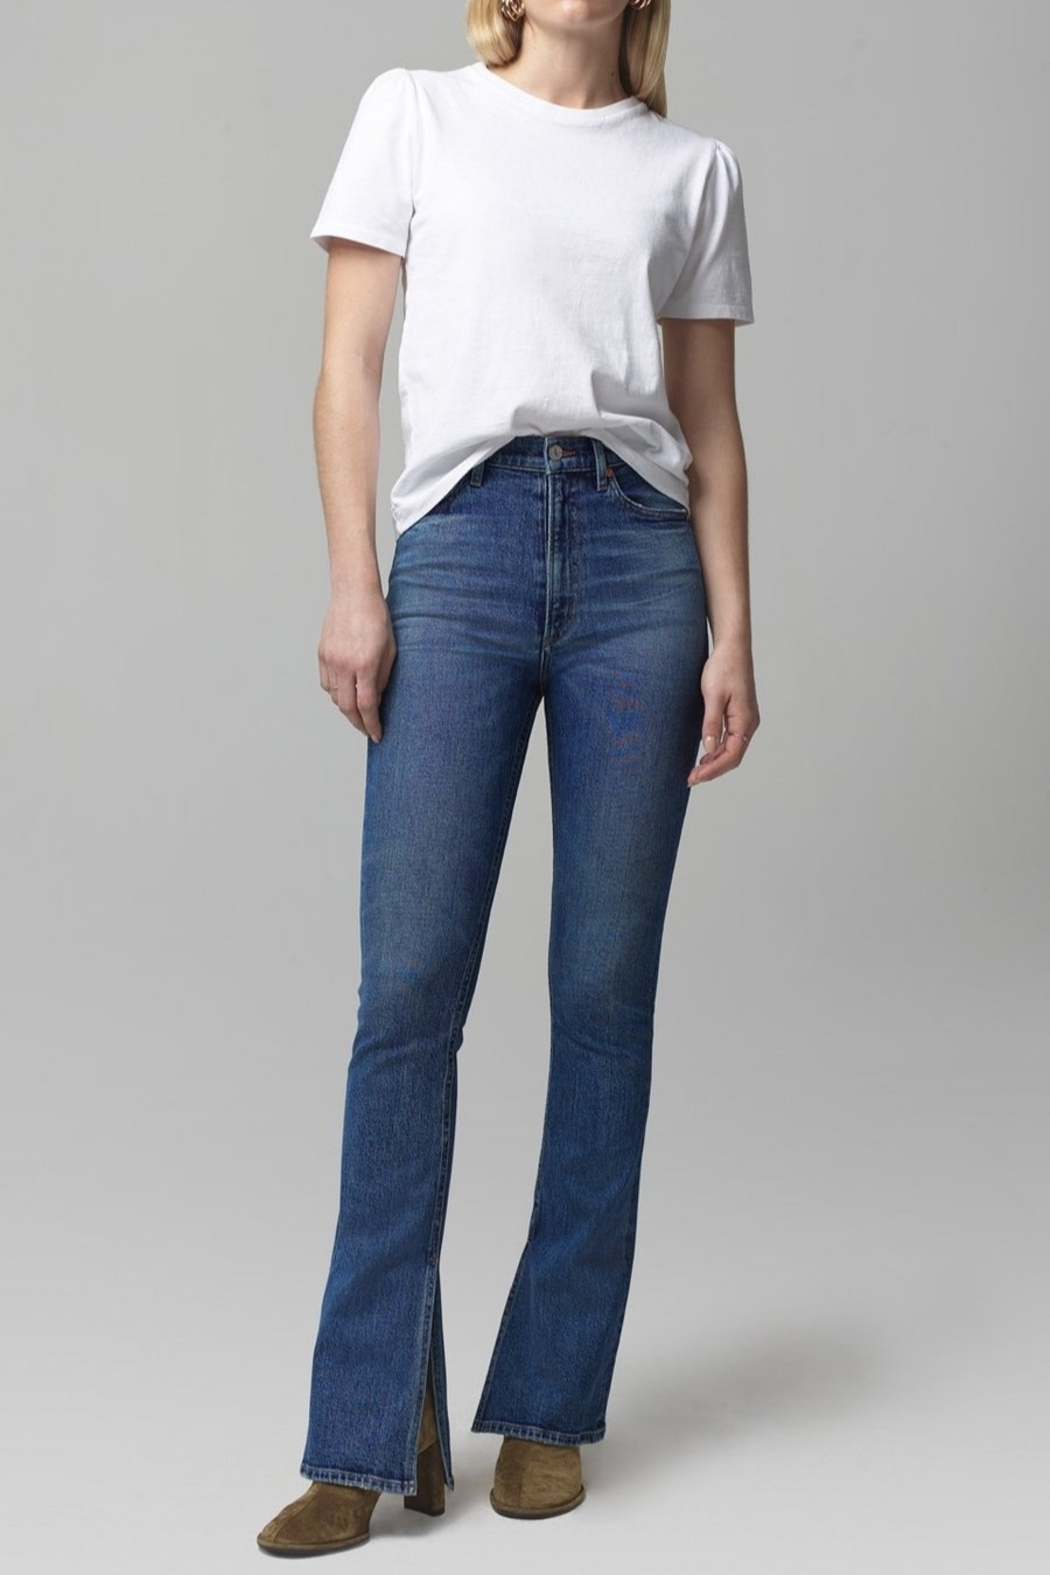 Citizens of Humanity Georgia Flare Jeans in Heist - Main Image